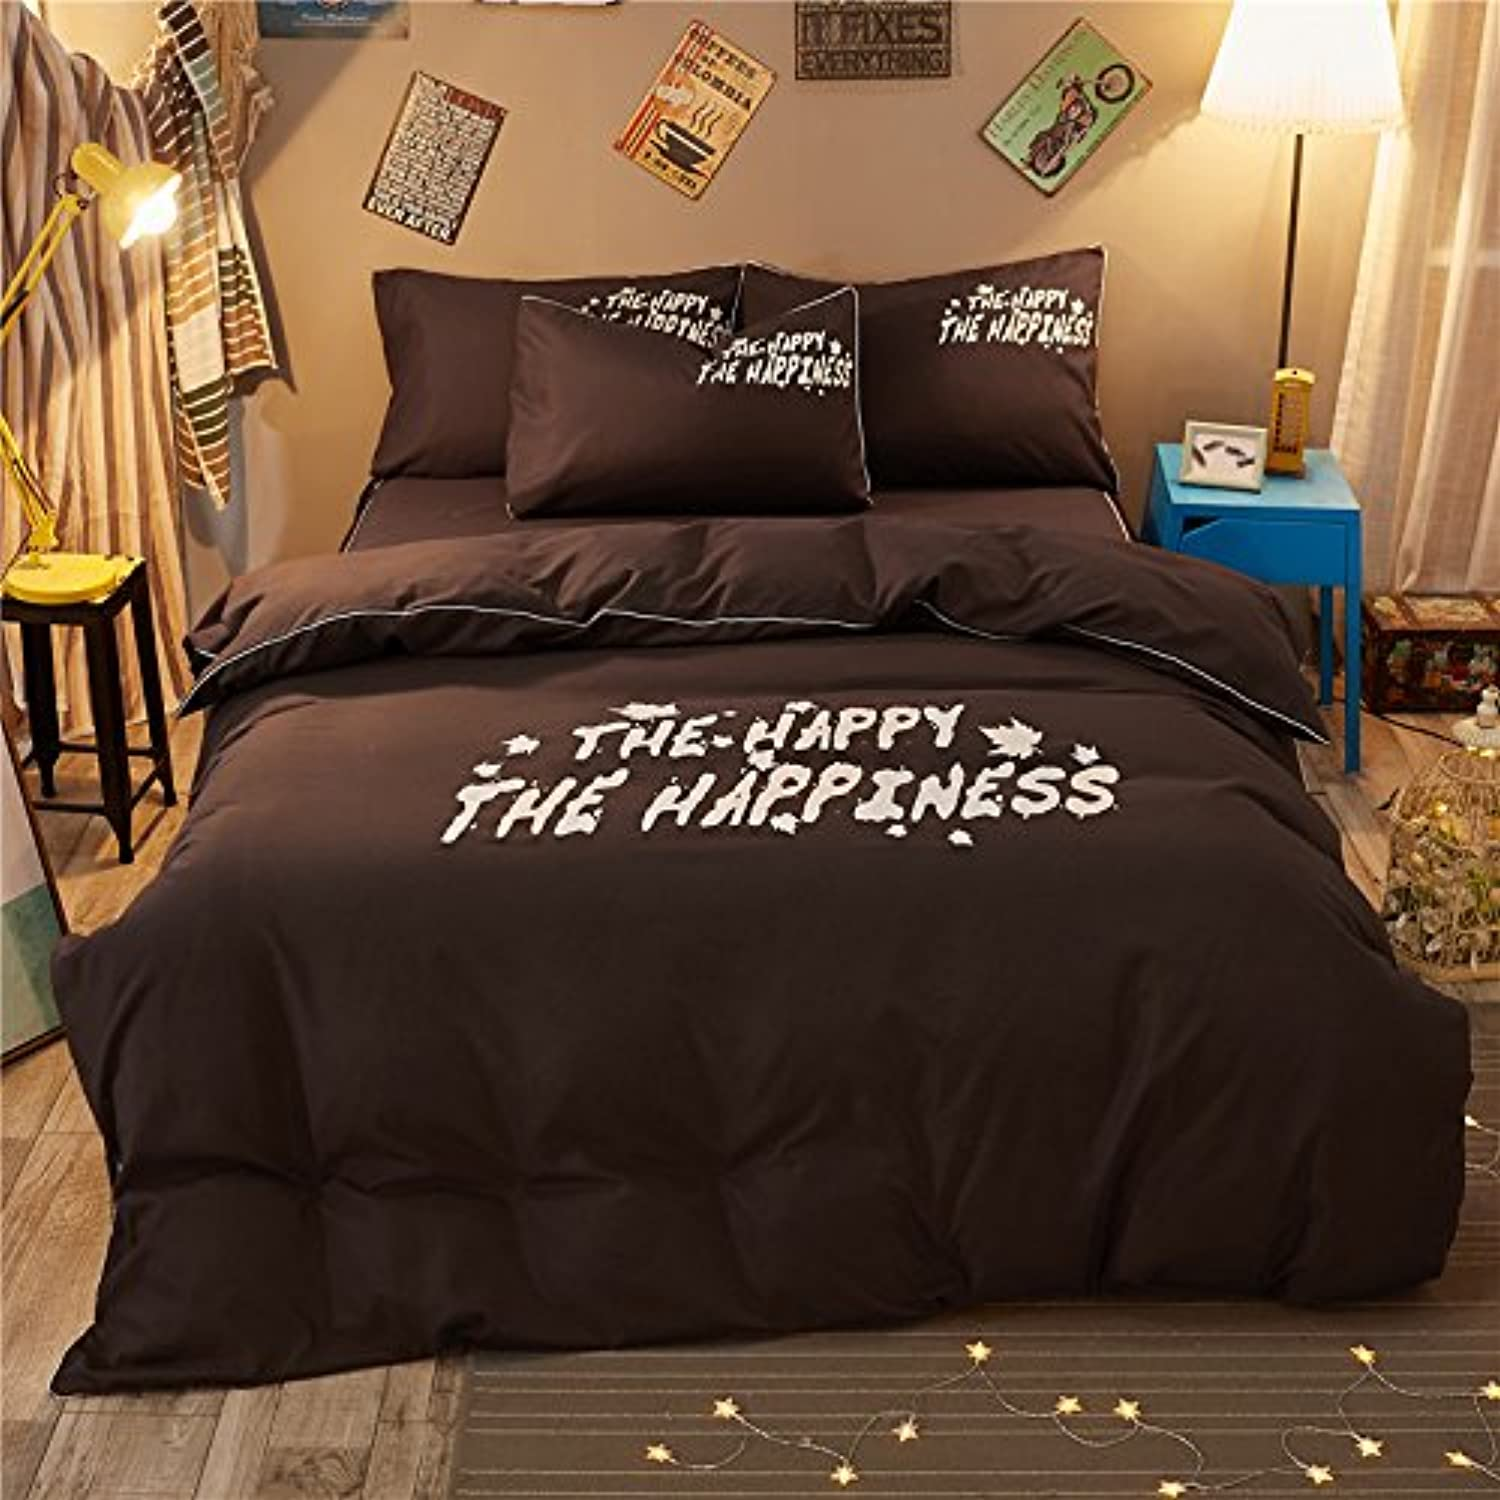 4pcs Solid Beddingset Duvet Cover Set Without Comforter Flat Bedsheet Pillowcase Durable YJ Twin Full Queen Happiness Design (Queen, Happiness, Coffee)